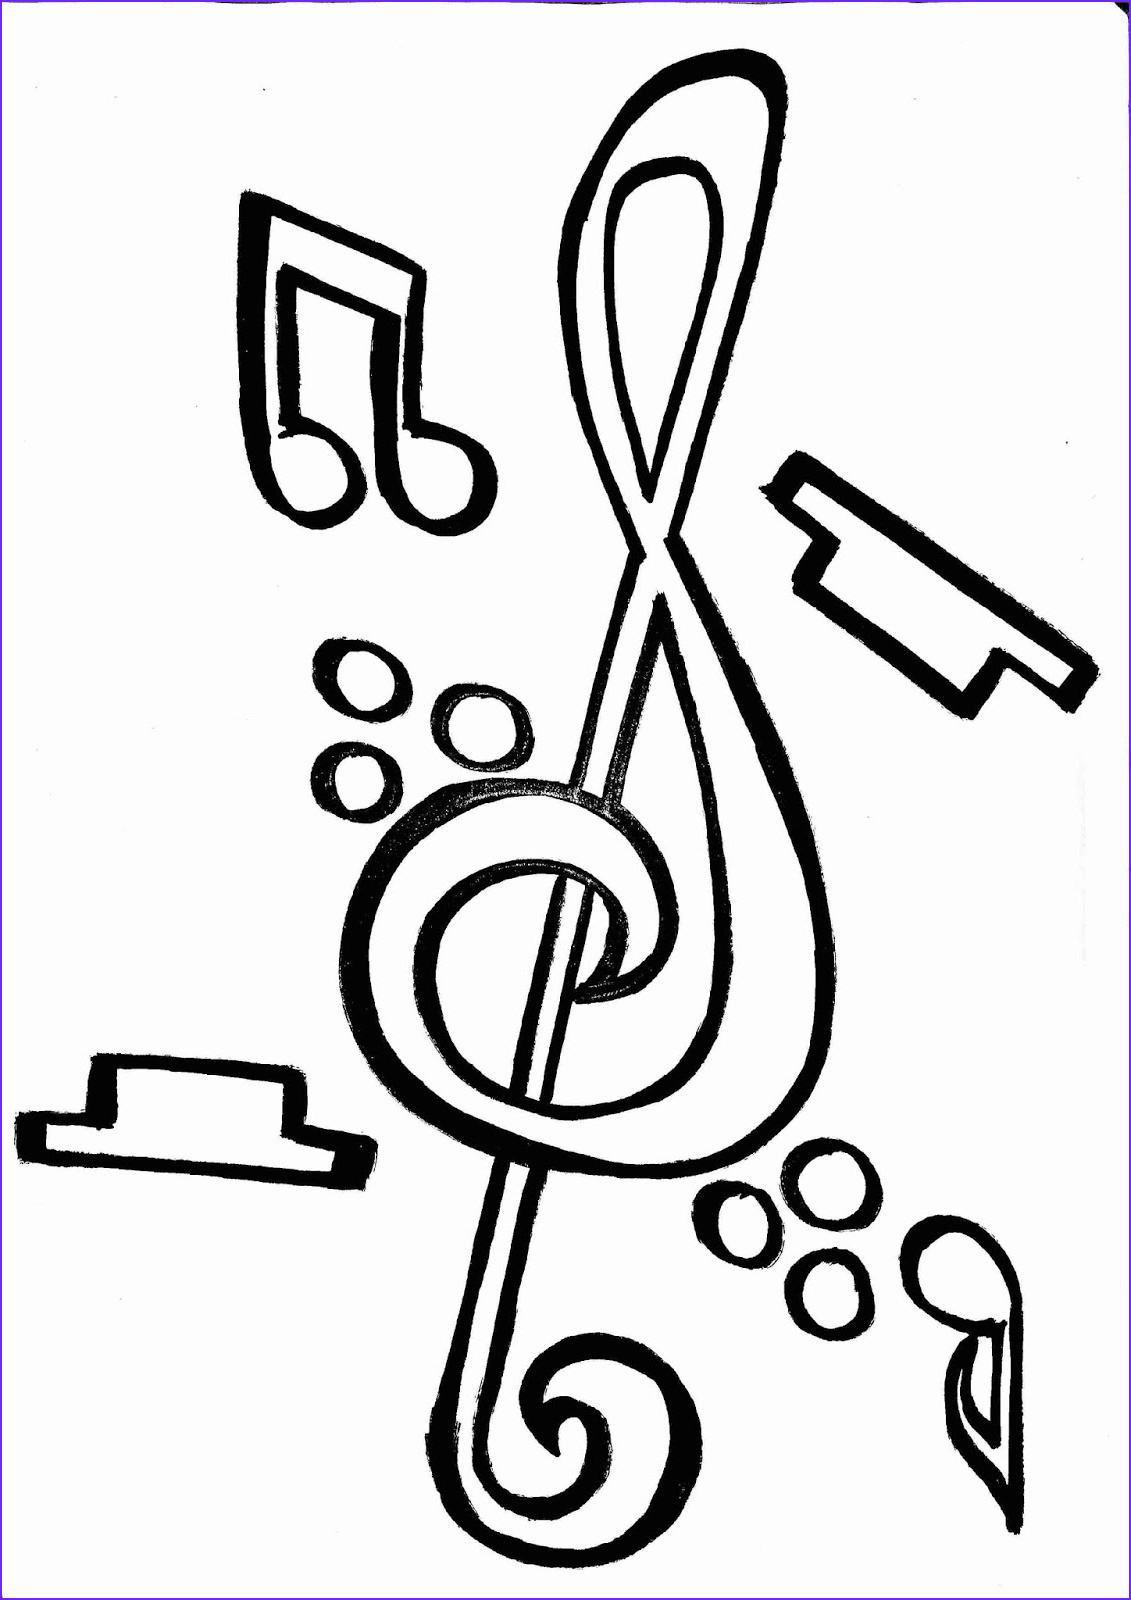 Music Coloring Pages Unique Photography Music Coloring Page Freebie Bernadette Teaches Music